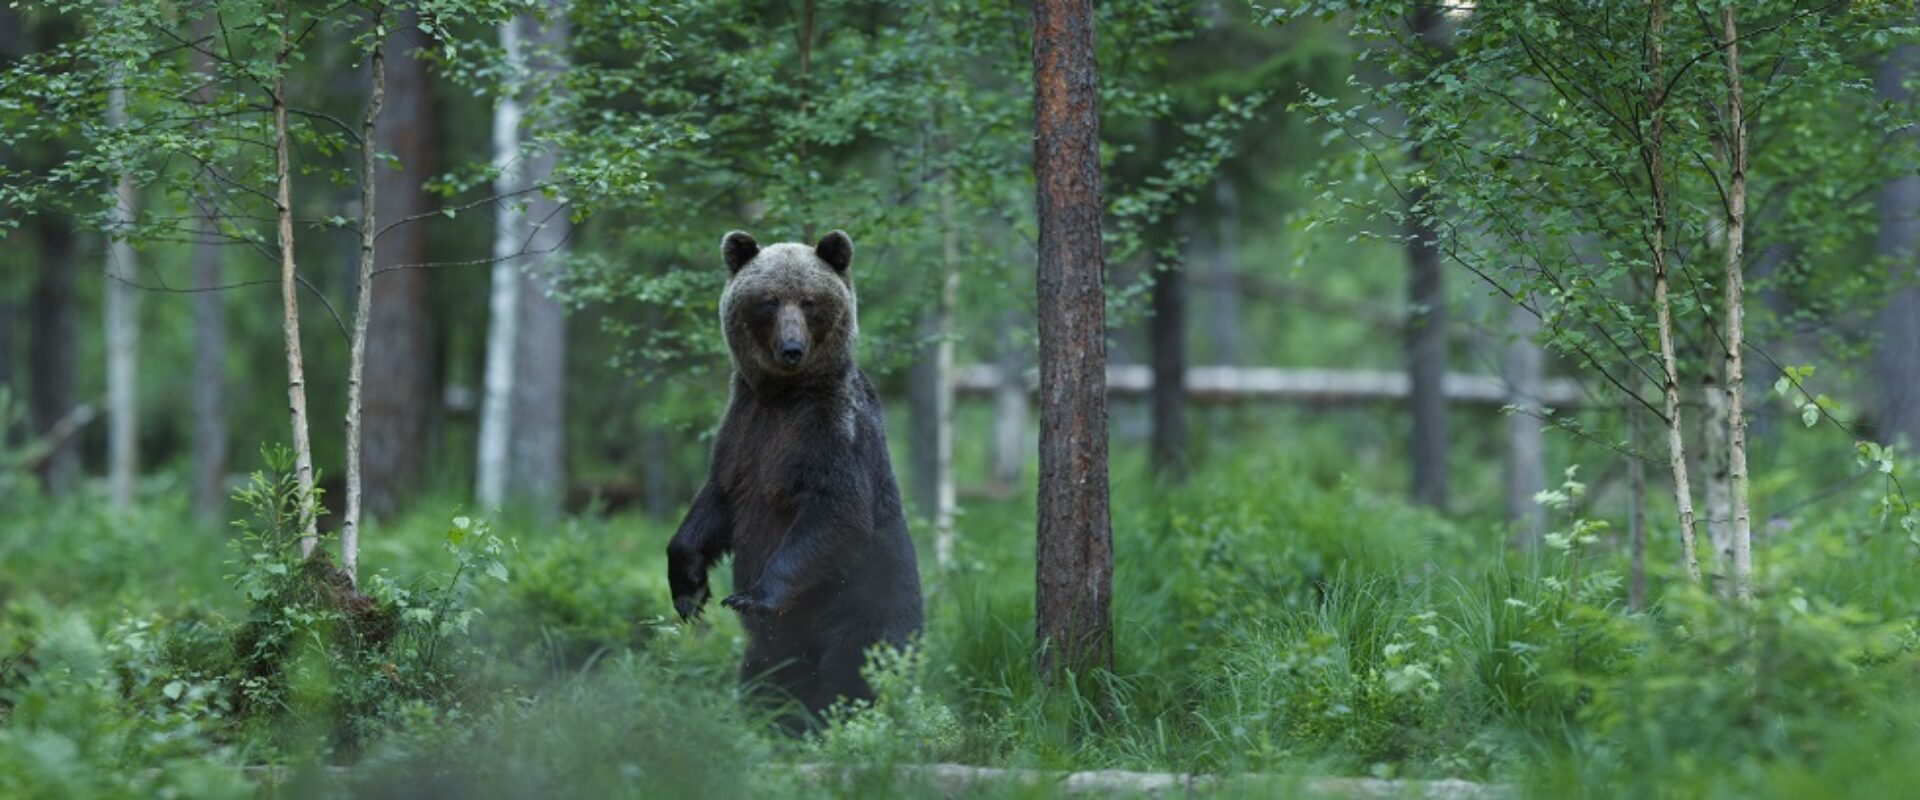 Bear Watching and Nature Tours in Estonia